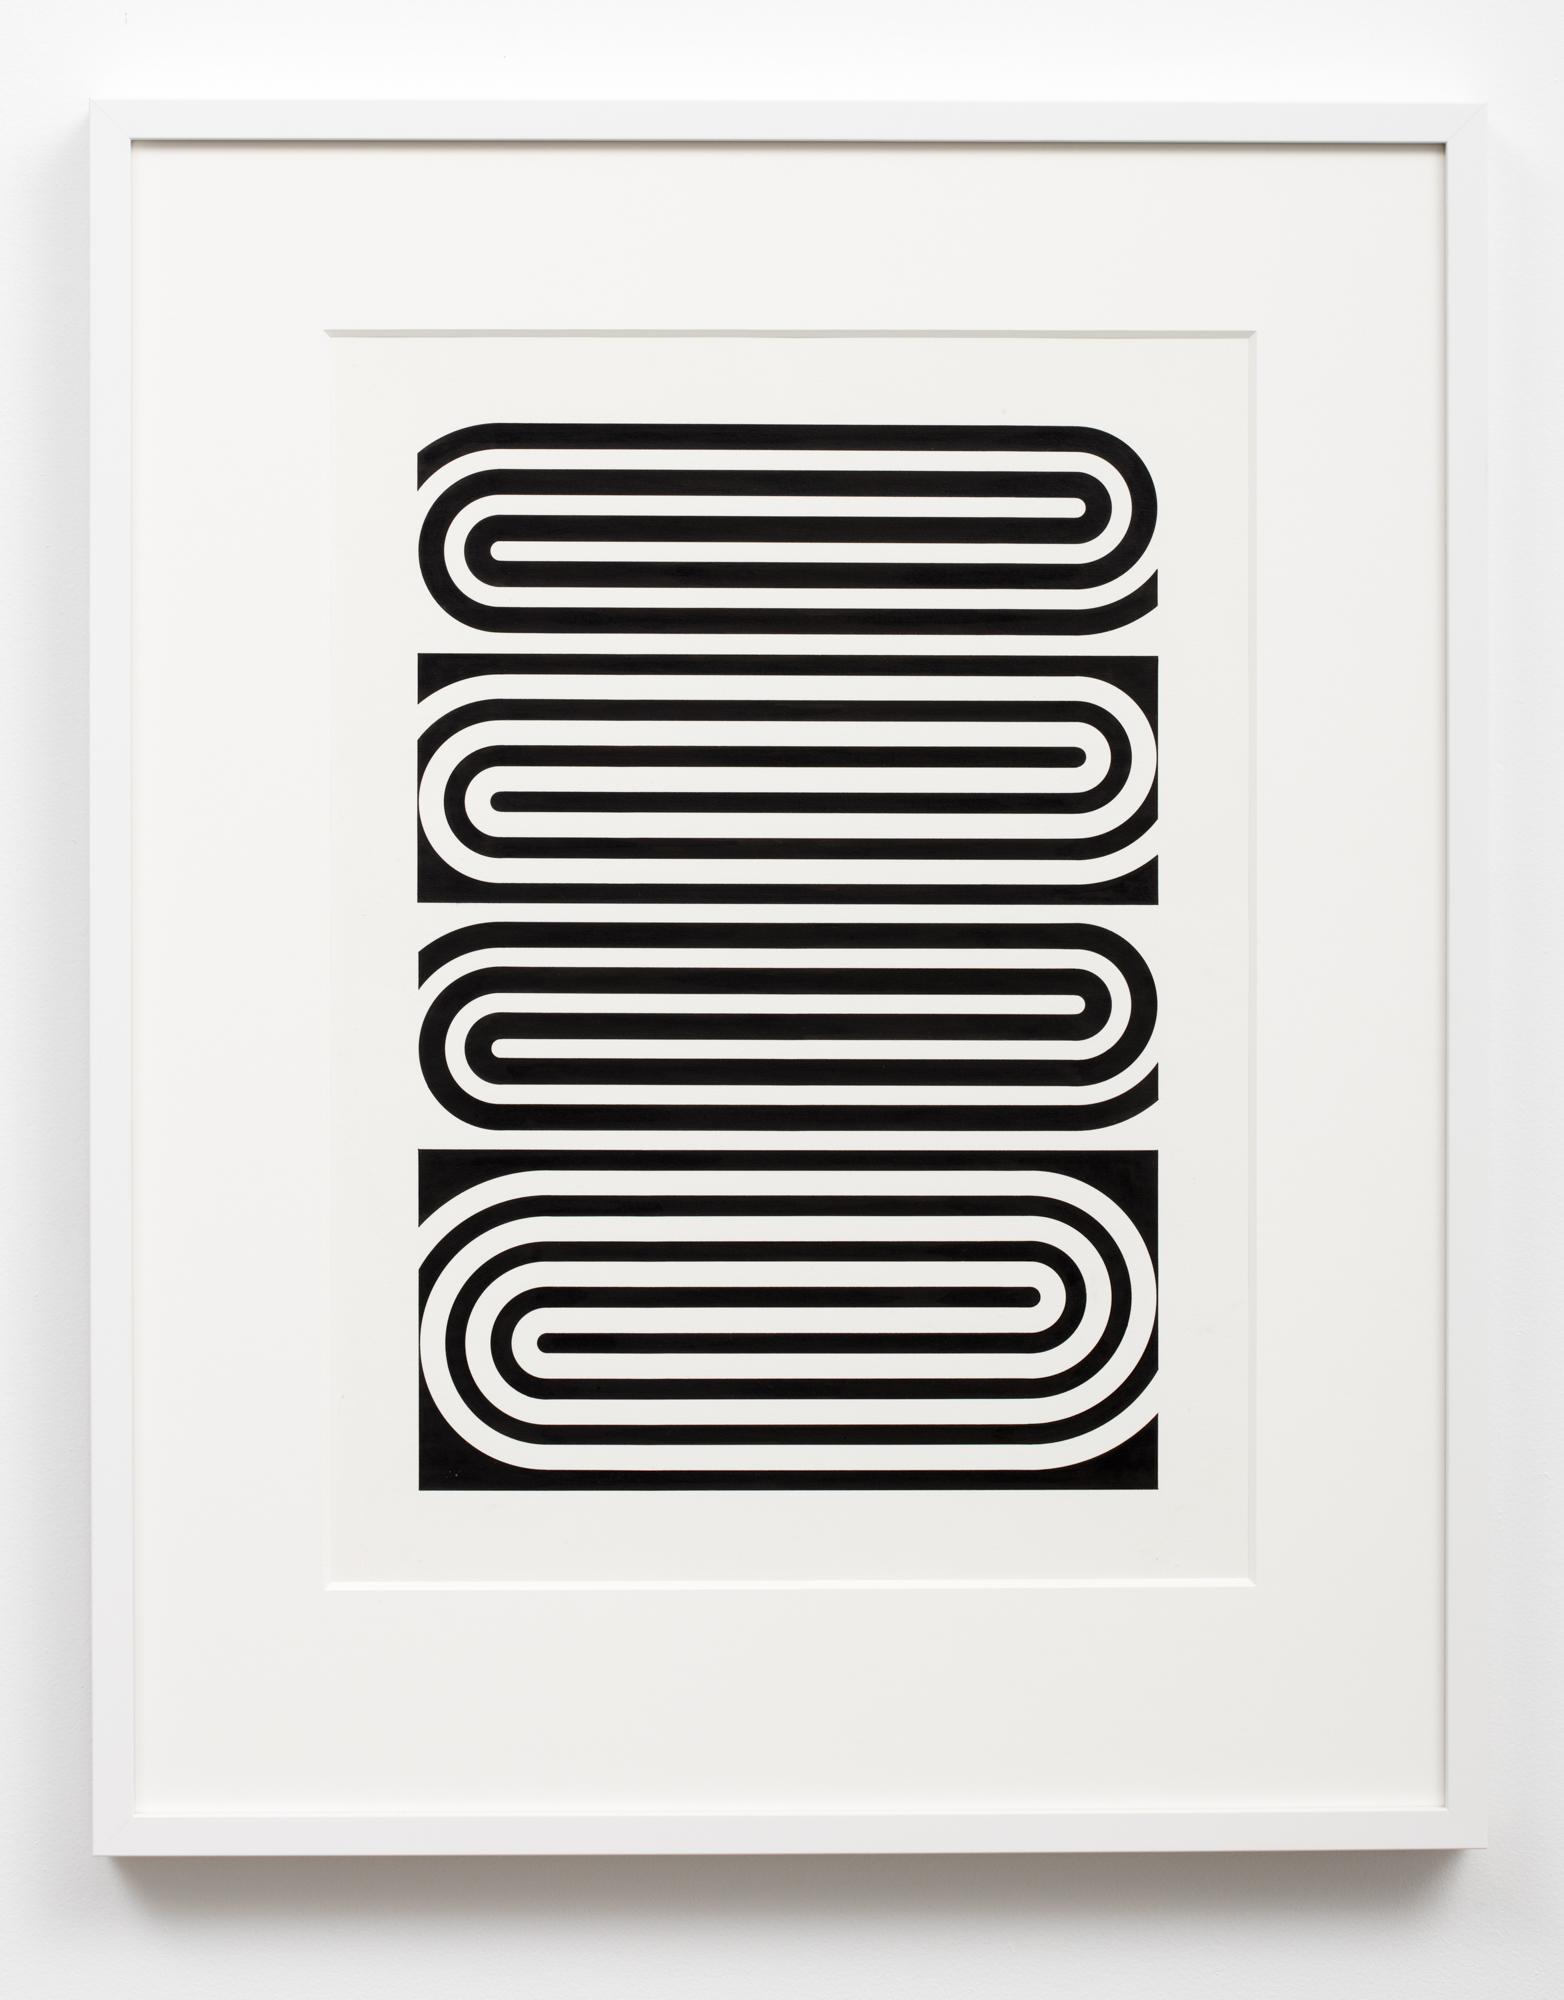 Gordon Walters,  Untitled , 1966, ink on paper, 515 x 315mm image size, courtesy of the Walters Estate